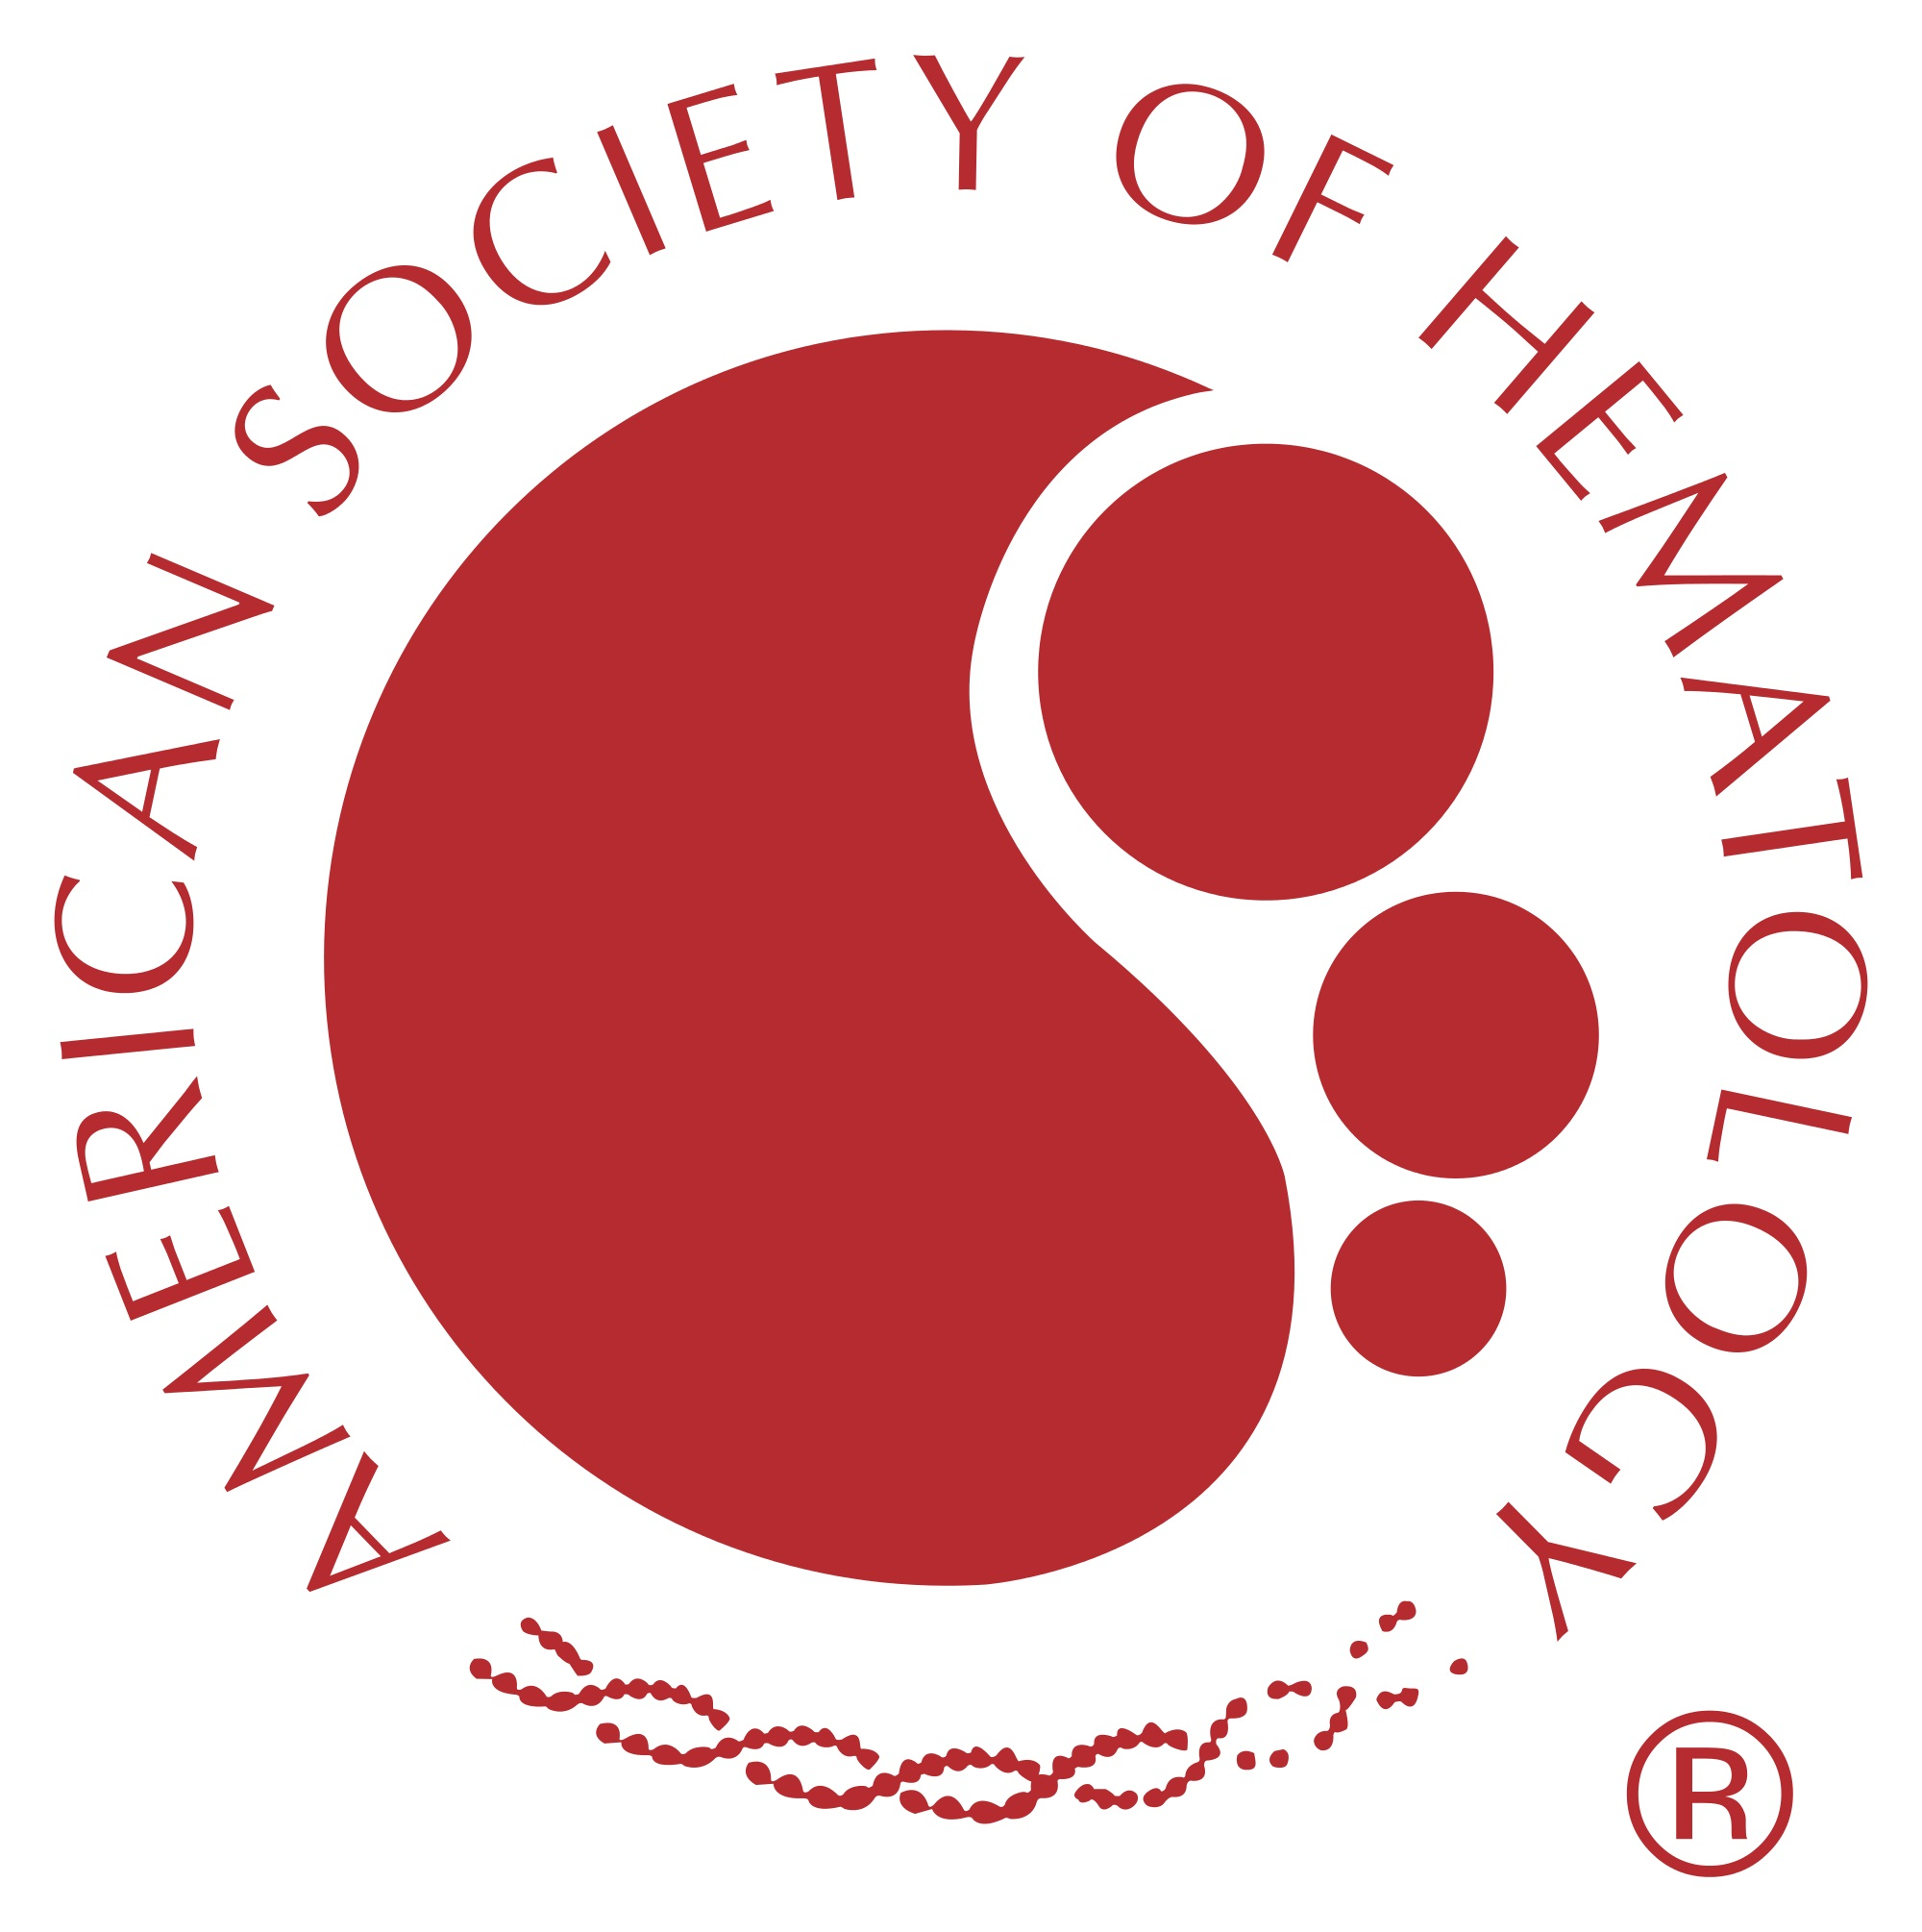 https://www.onescdvoice.com/wp-content/uploads/2017/02/American_Society_of_Hematology.jpg